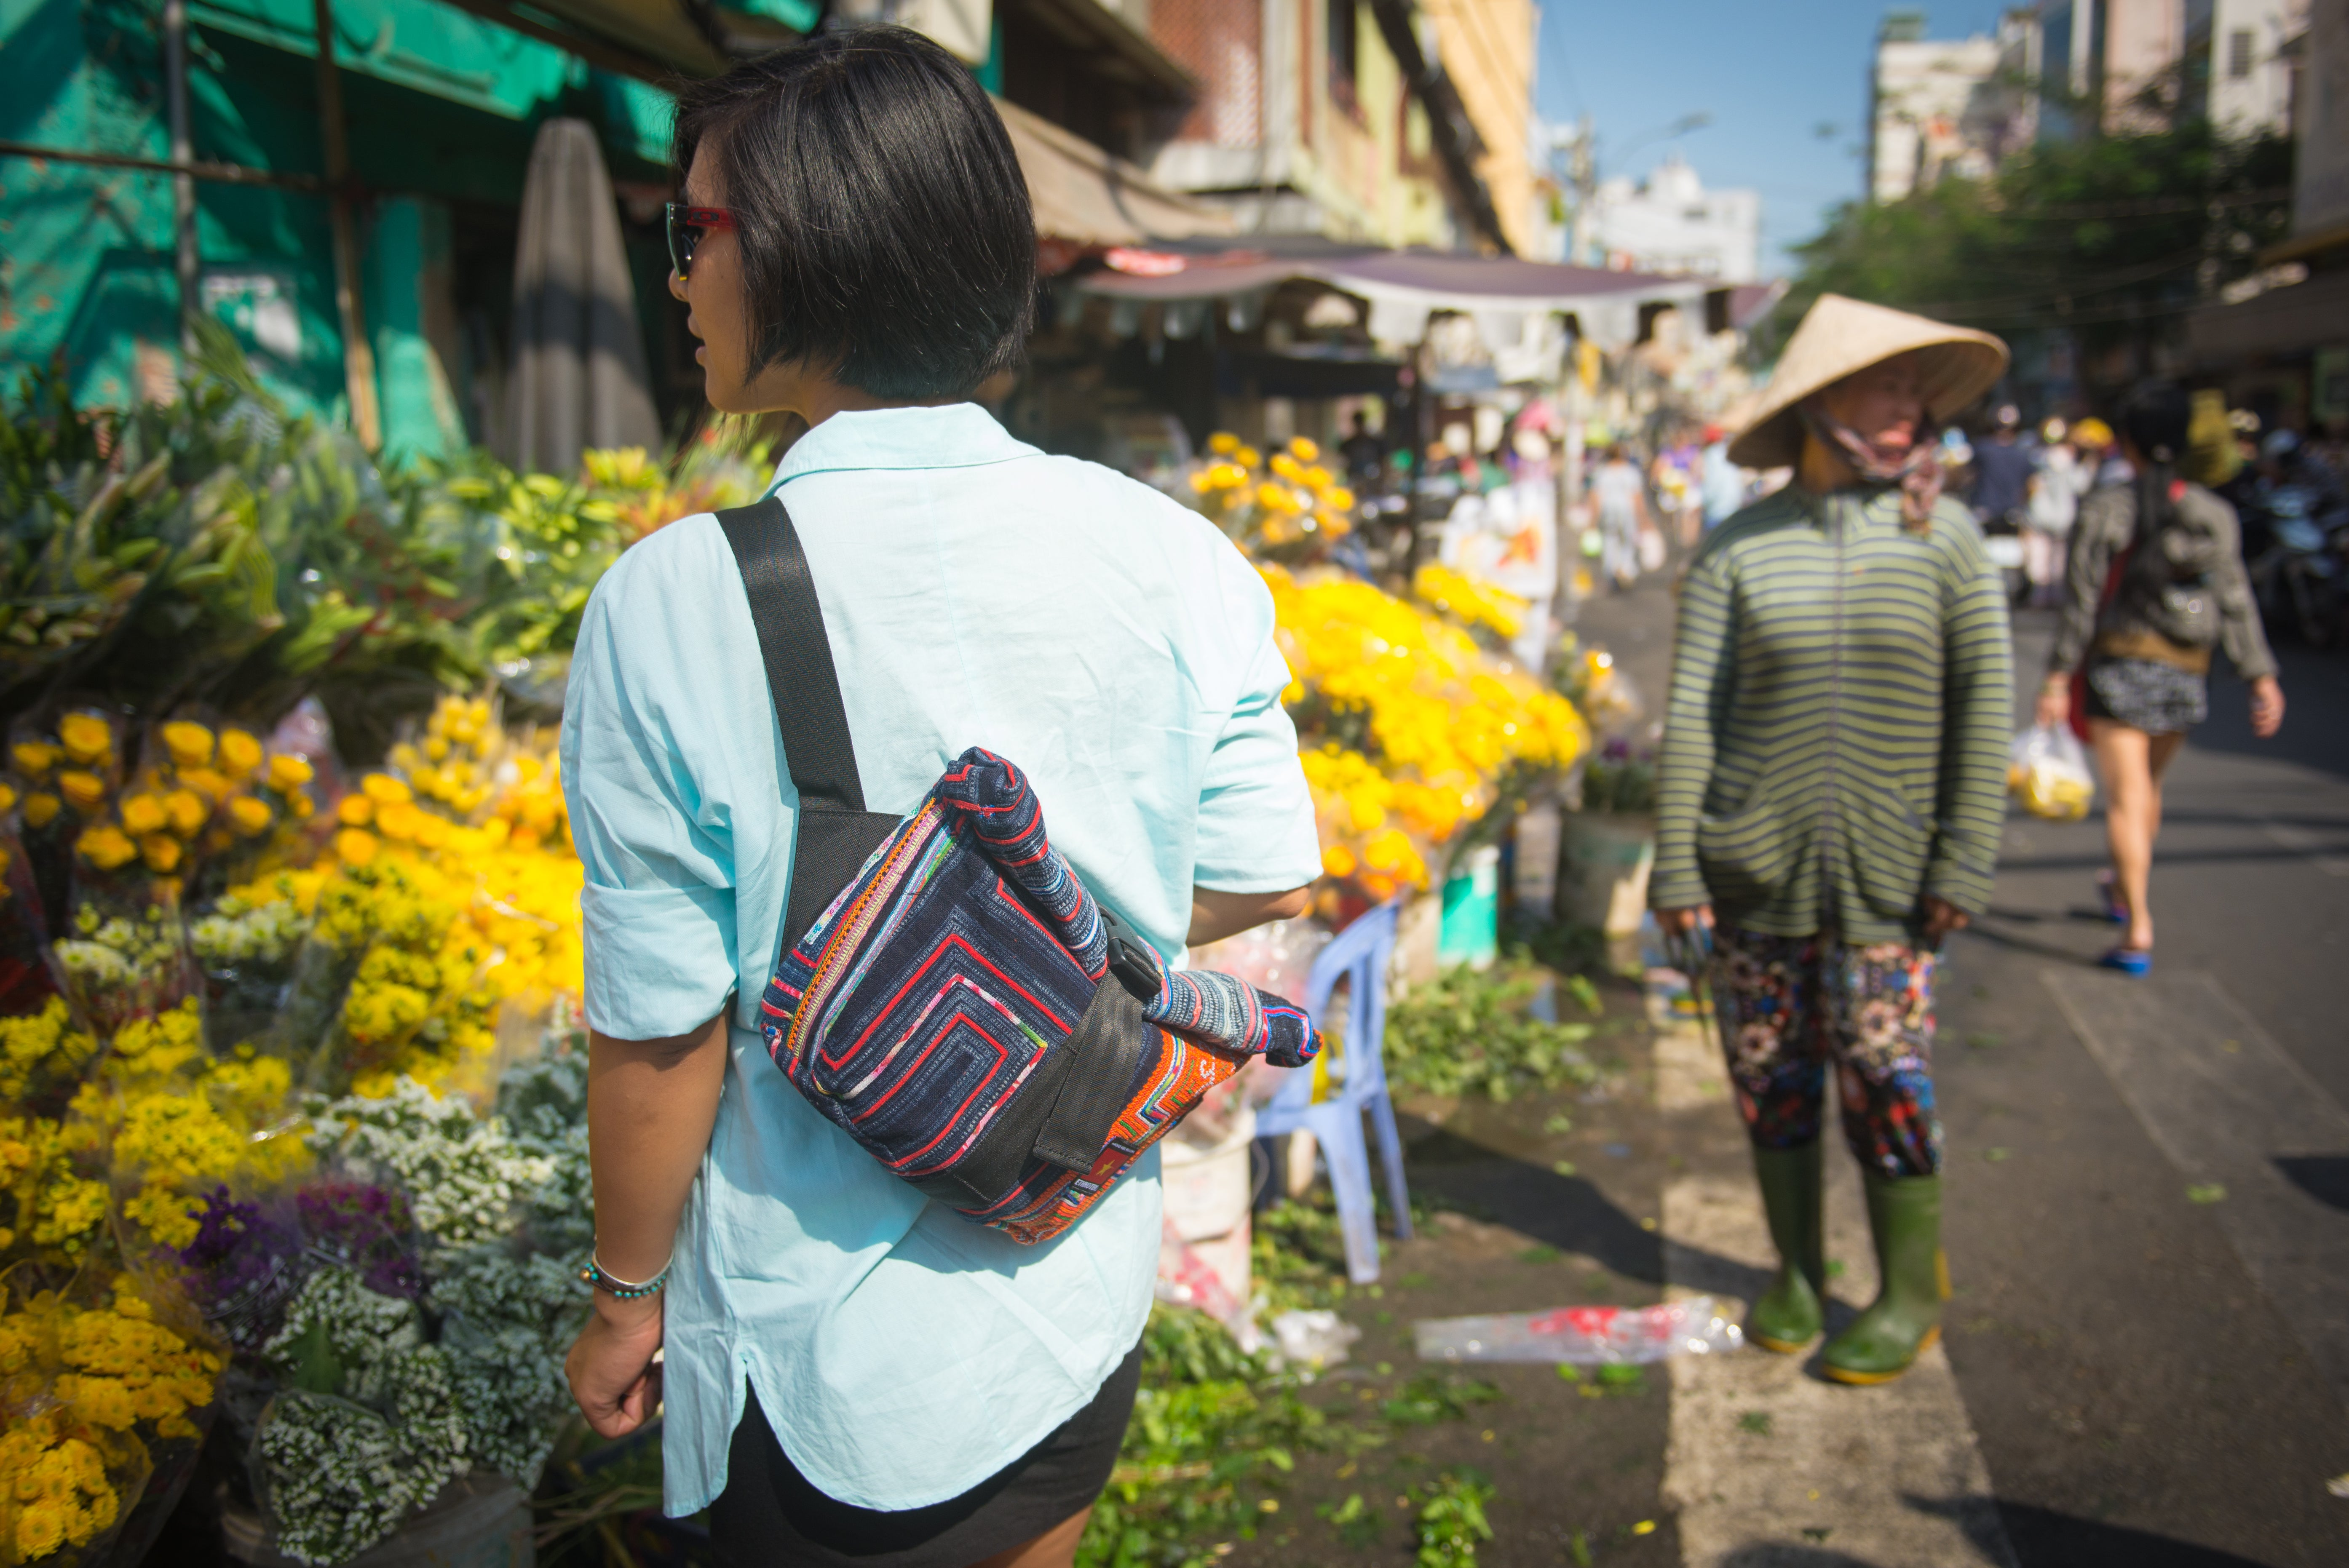 cyclo travel sling woman at market with flowers